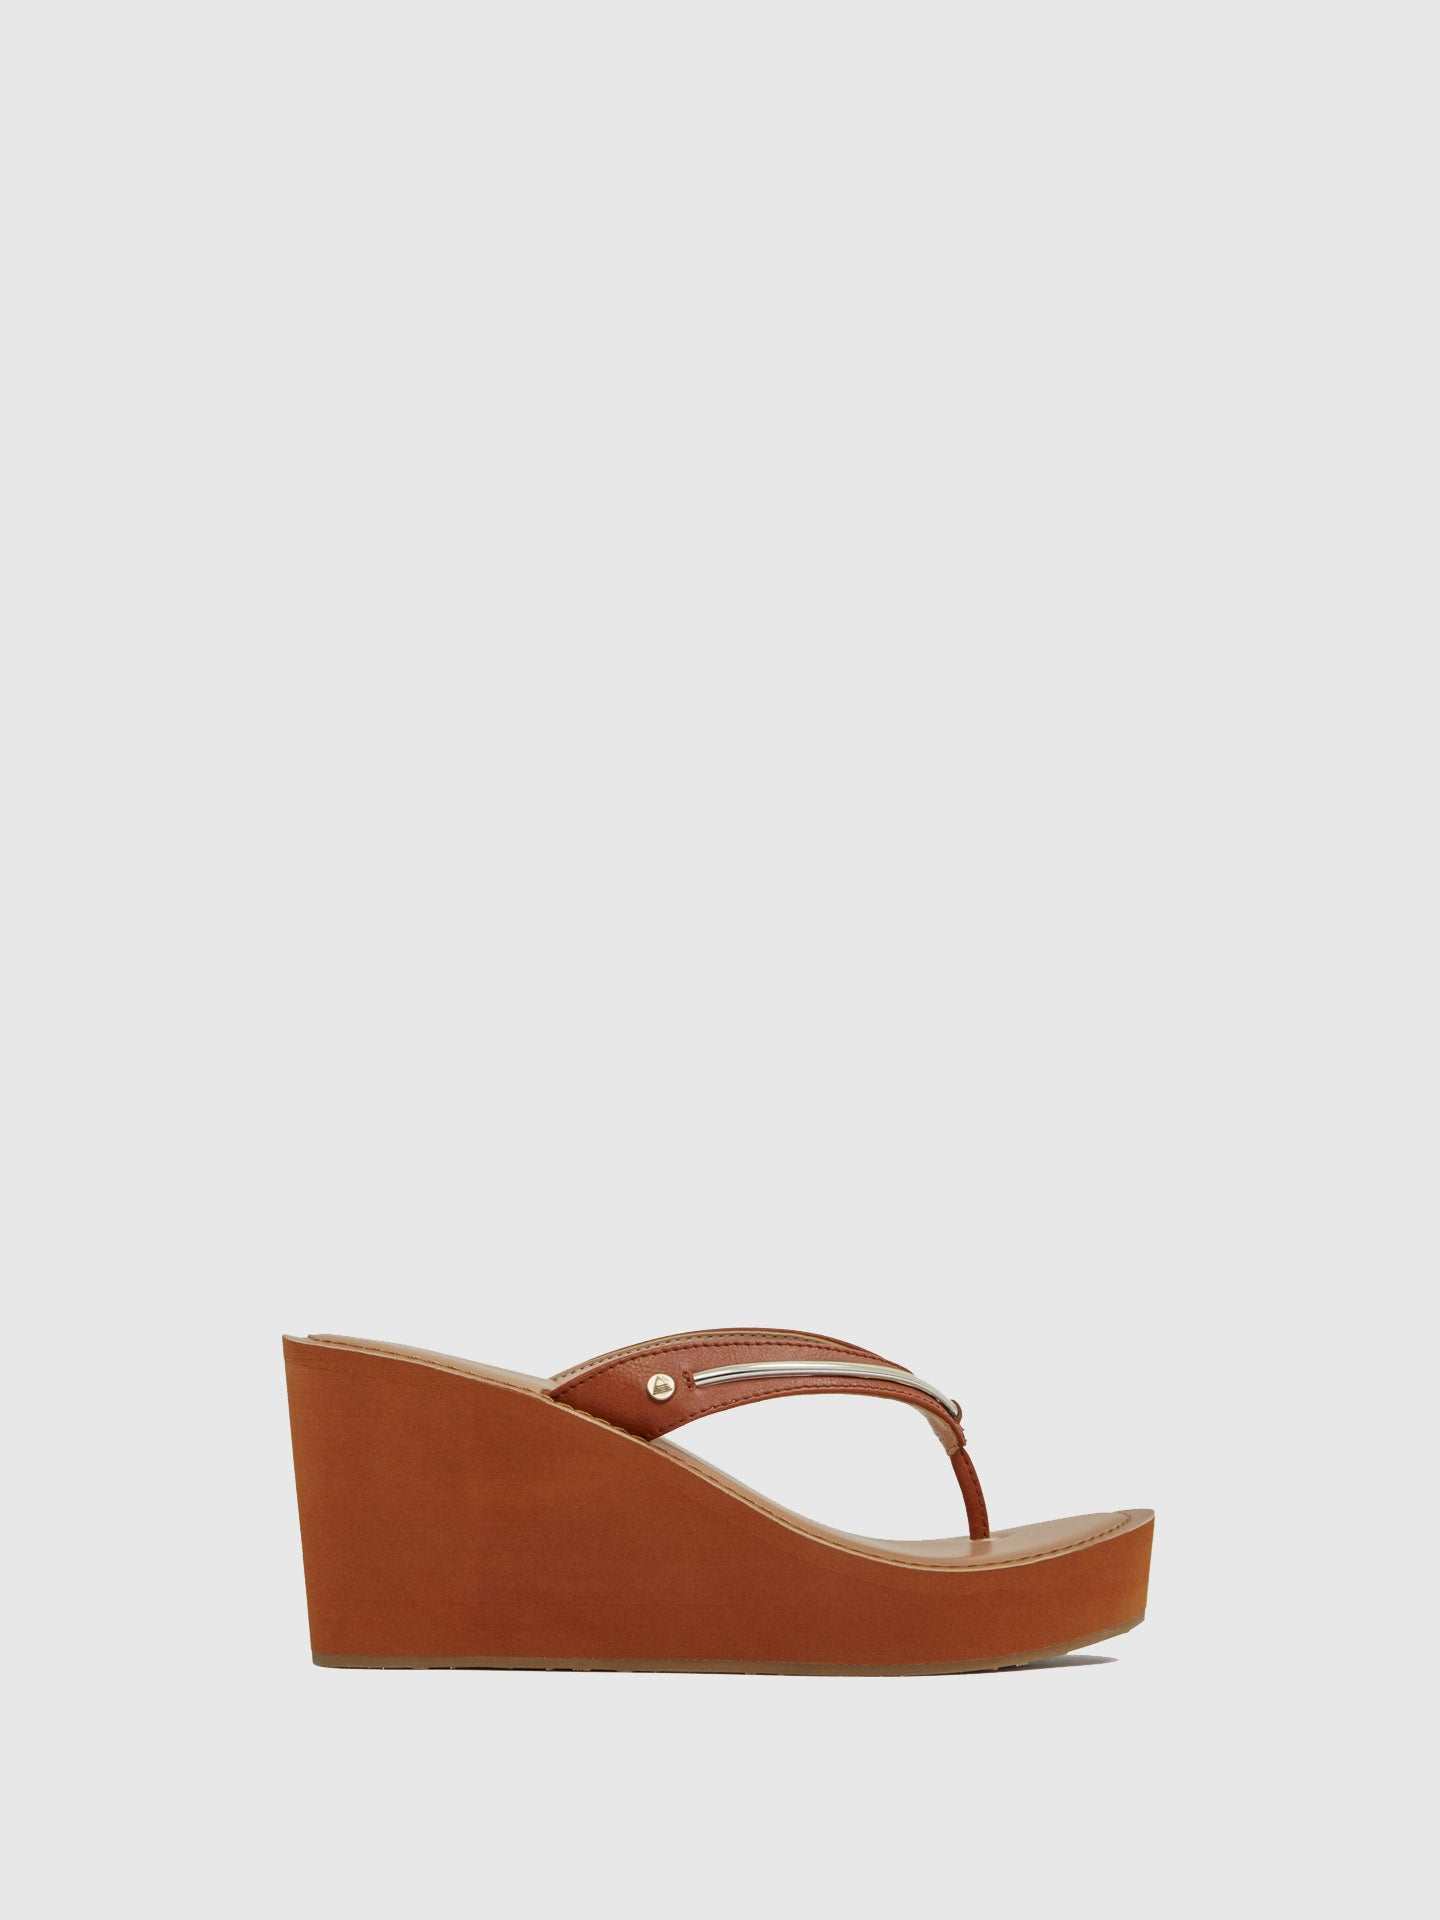 Aldo Maroon Wedge Sandals